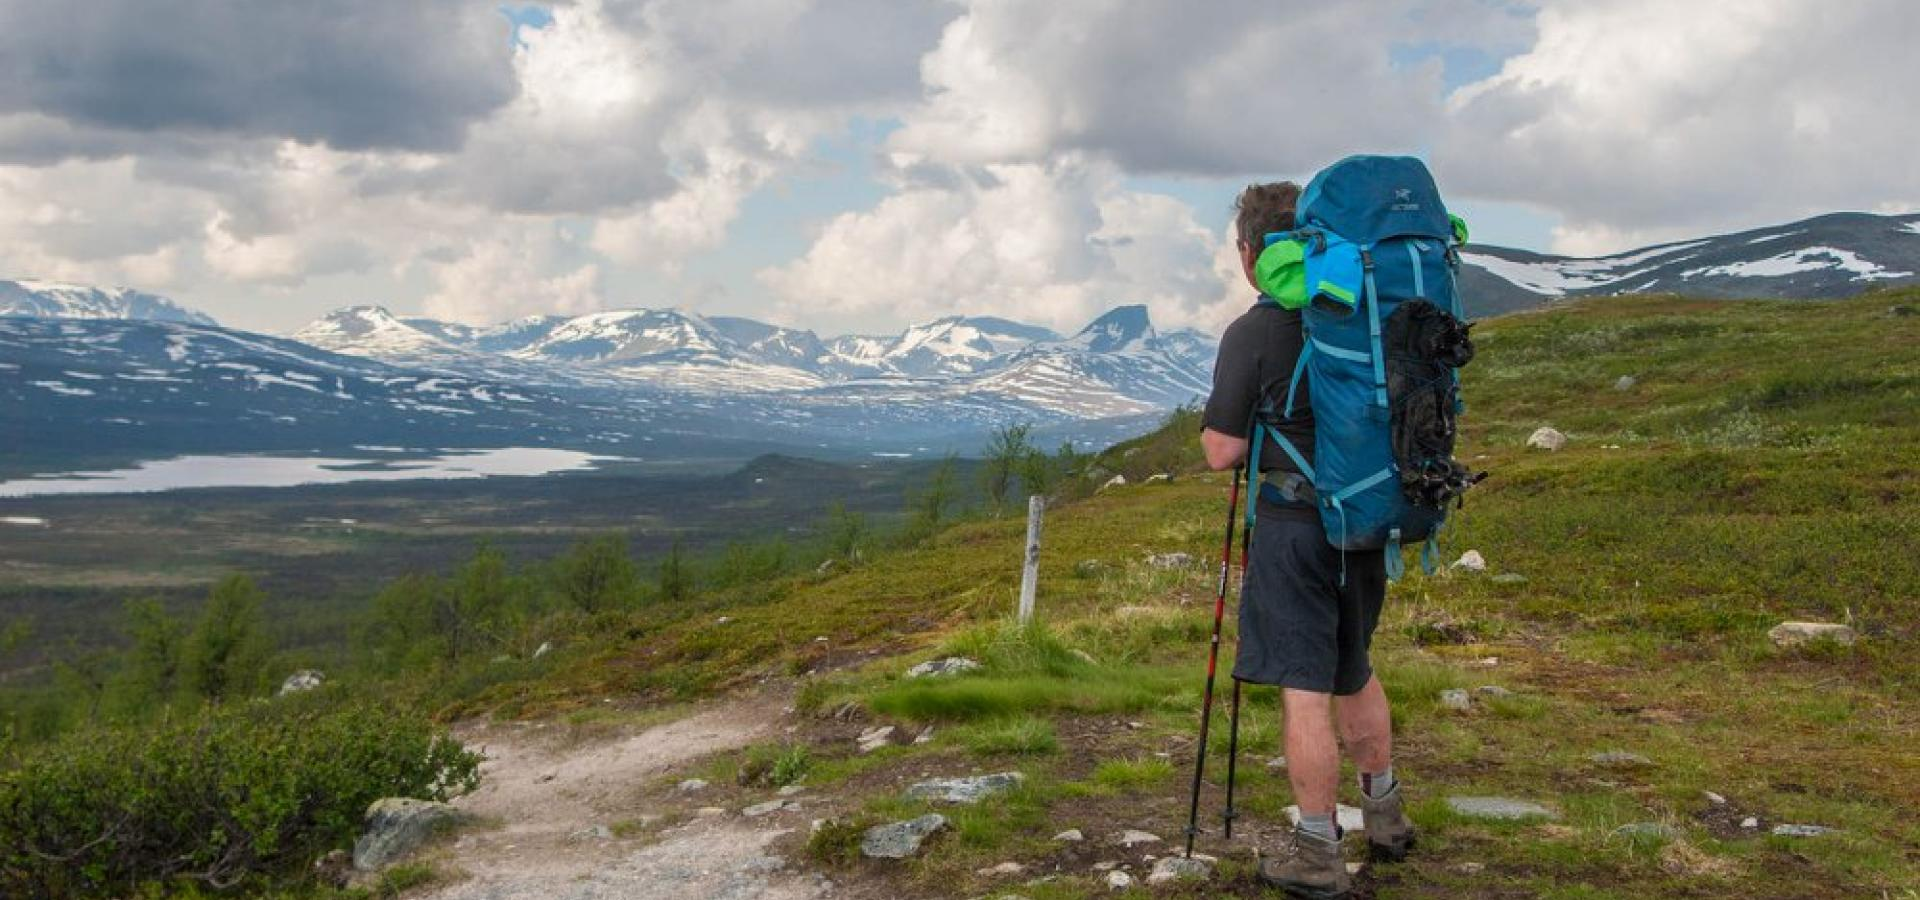 Hiker with a big blue backpack standing by a path and looking towards the snowcapped mountains in the distance